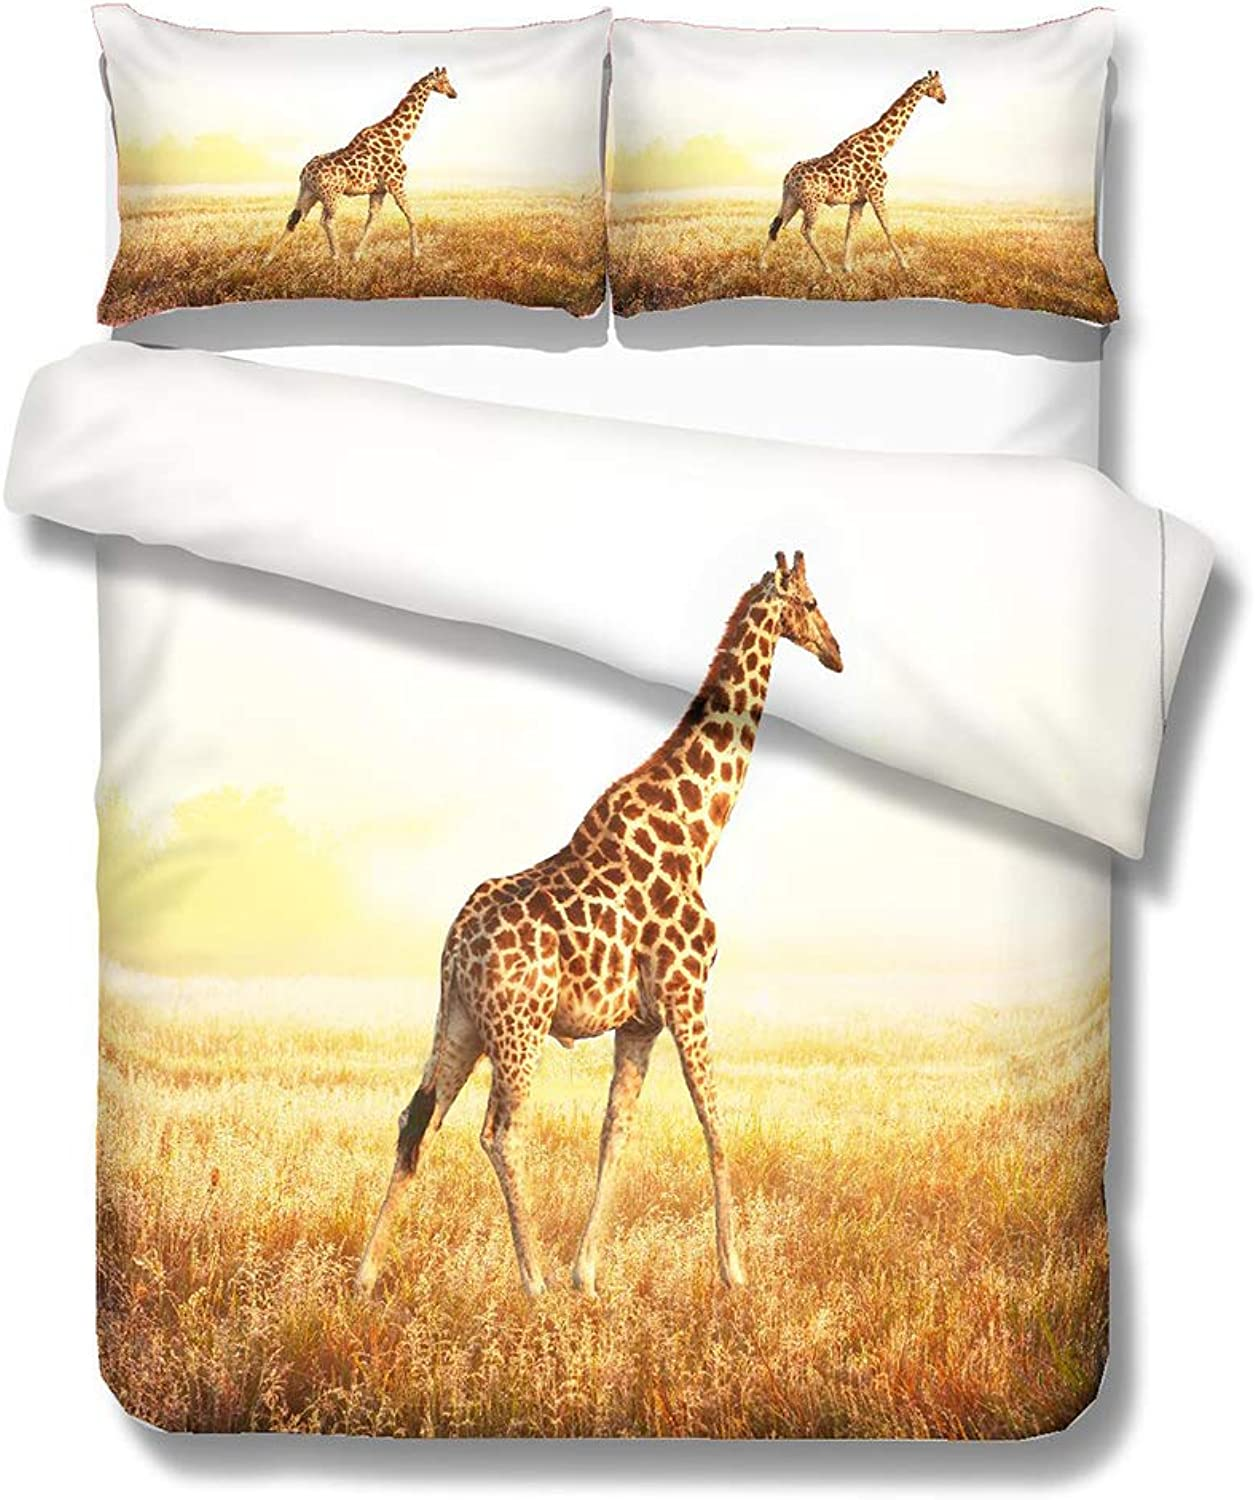 pinkAuroma 3D Giraffe Bedding Set Duvet Cover Giraffe Bedding 3D Grassland Bedding, 3 Piece Animal Bedding Sets with Pillow Shams Queen Size